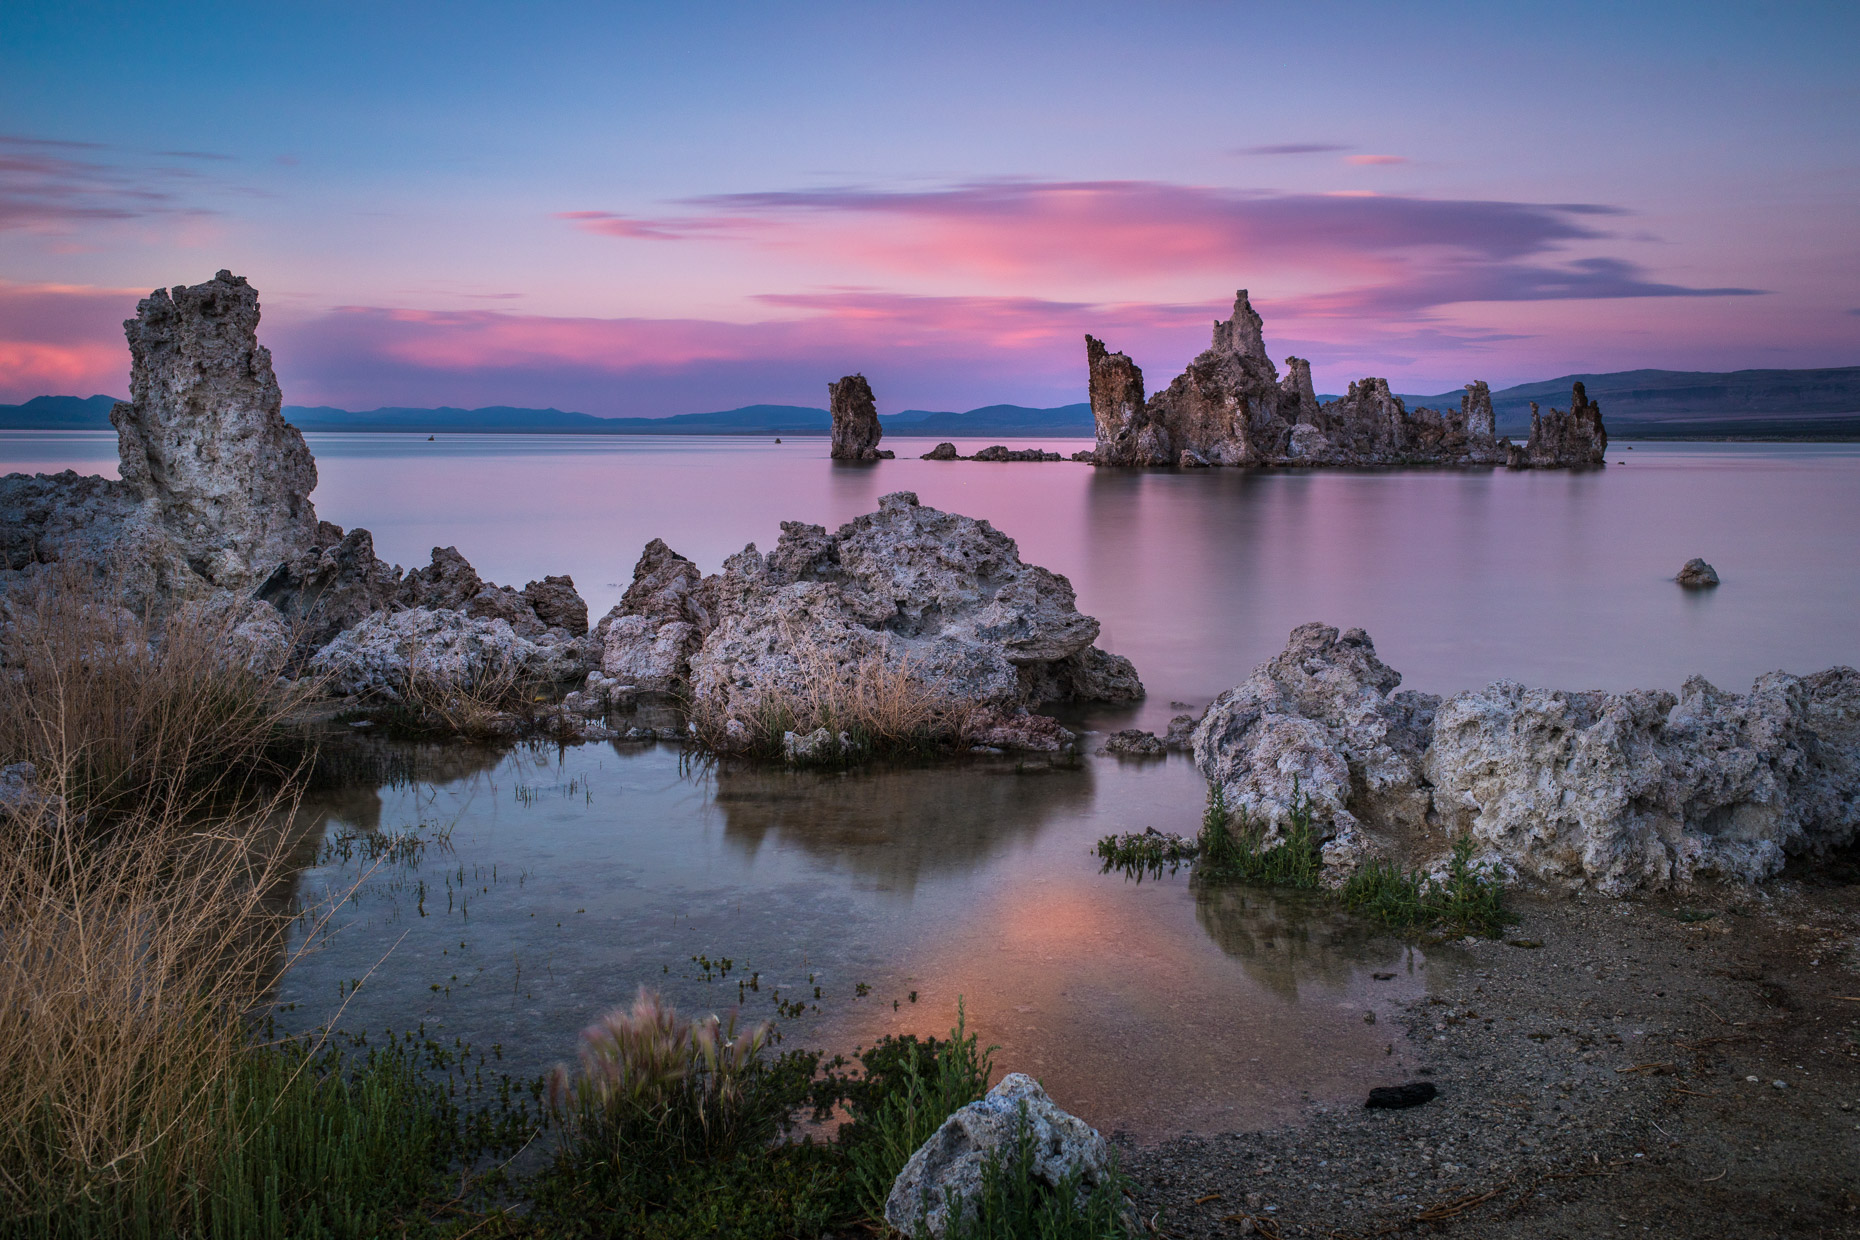 Sun rises over a tufa rock formation in the Nevada desert